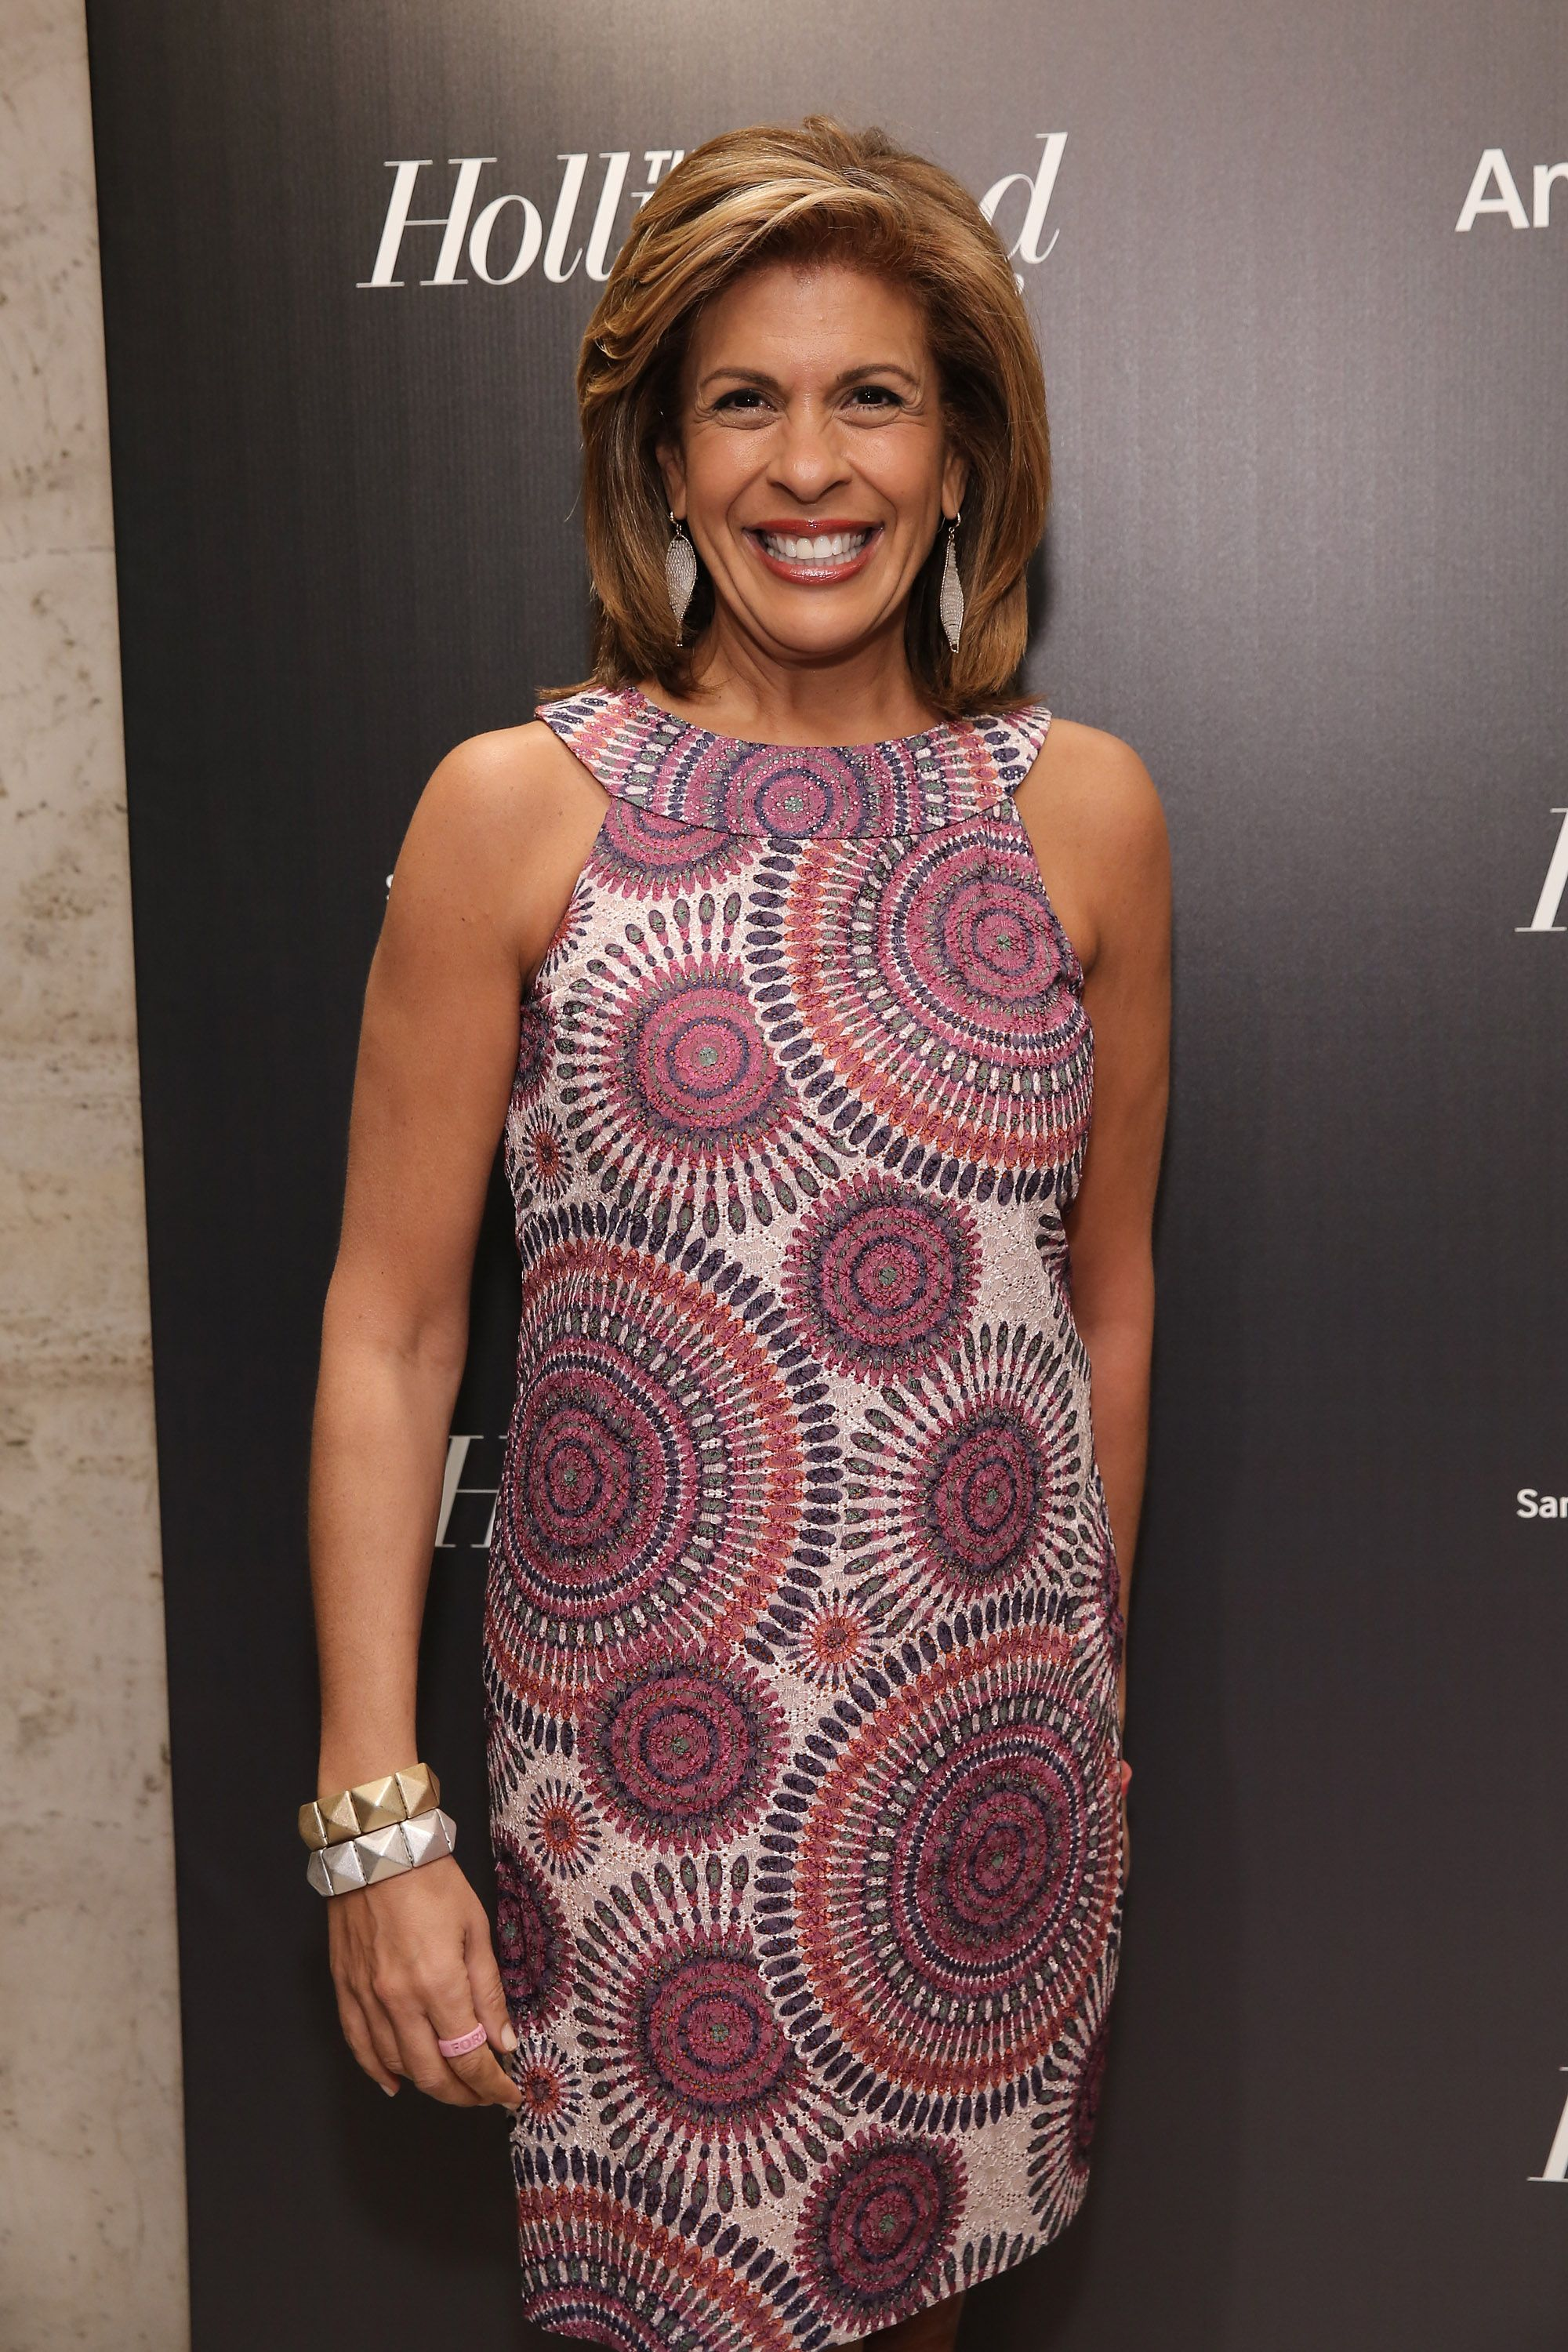 """Hoda Kotb at """"The 35 Most Powerful People In Media"""" celebrated by The Hollywood Reporter on April 8, 2015, in New York City 